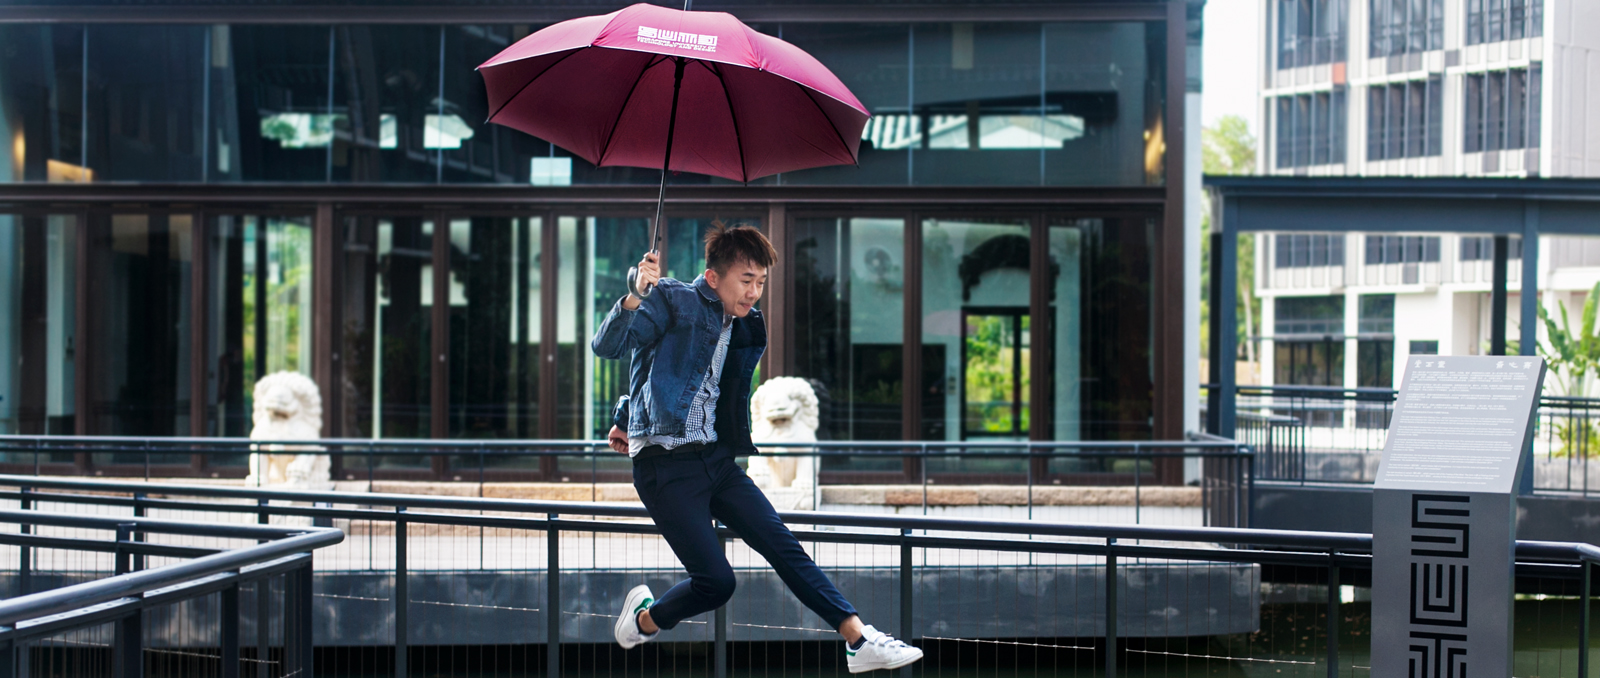 slider_master_umbrella_1600x678